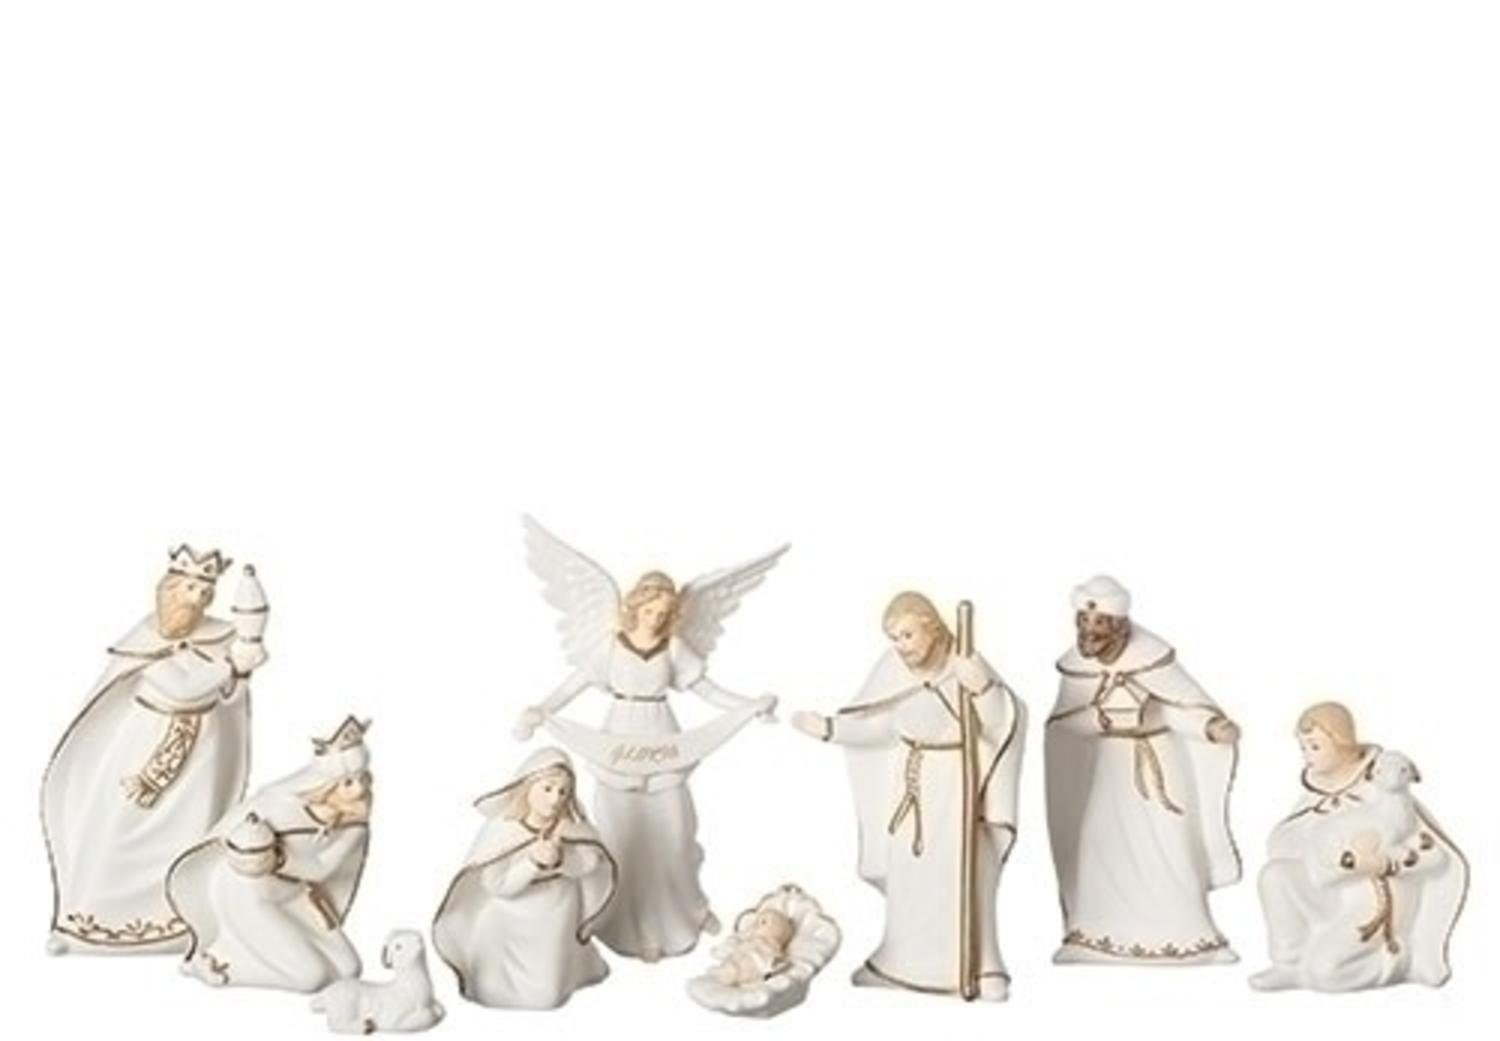 9 Piece Set of 6'' Ivory and Gold Inspirational Porcelain Nativity Figure